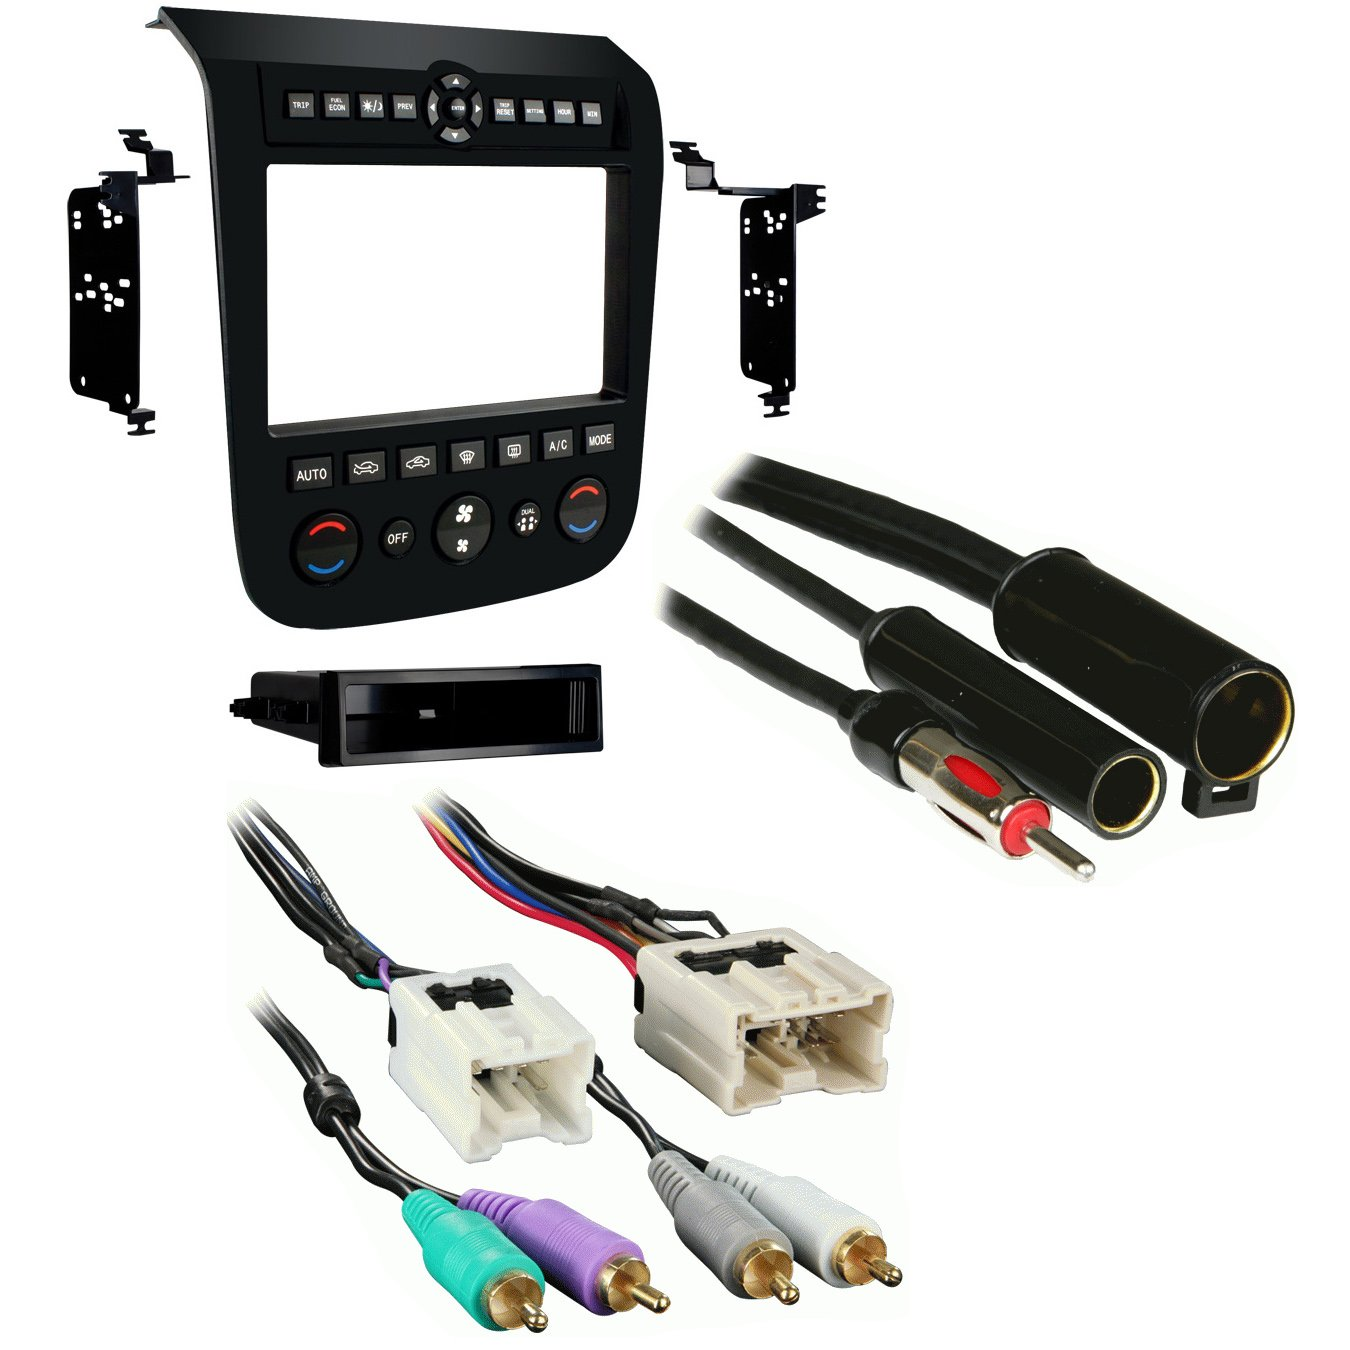 amazon com metra 99 7612b single double din stereo installation Nissan Aftermarket Stereo Wiring Harness 2002  2007 Ford F-150 Wiring Harness 1998 Nissan Maxima Wiring Harness 2007 nissan murano trailer wiring harness